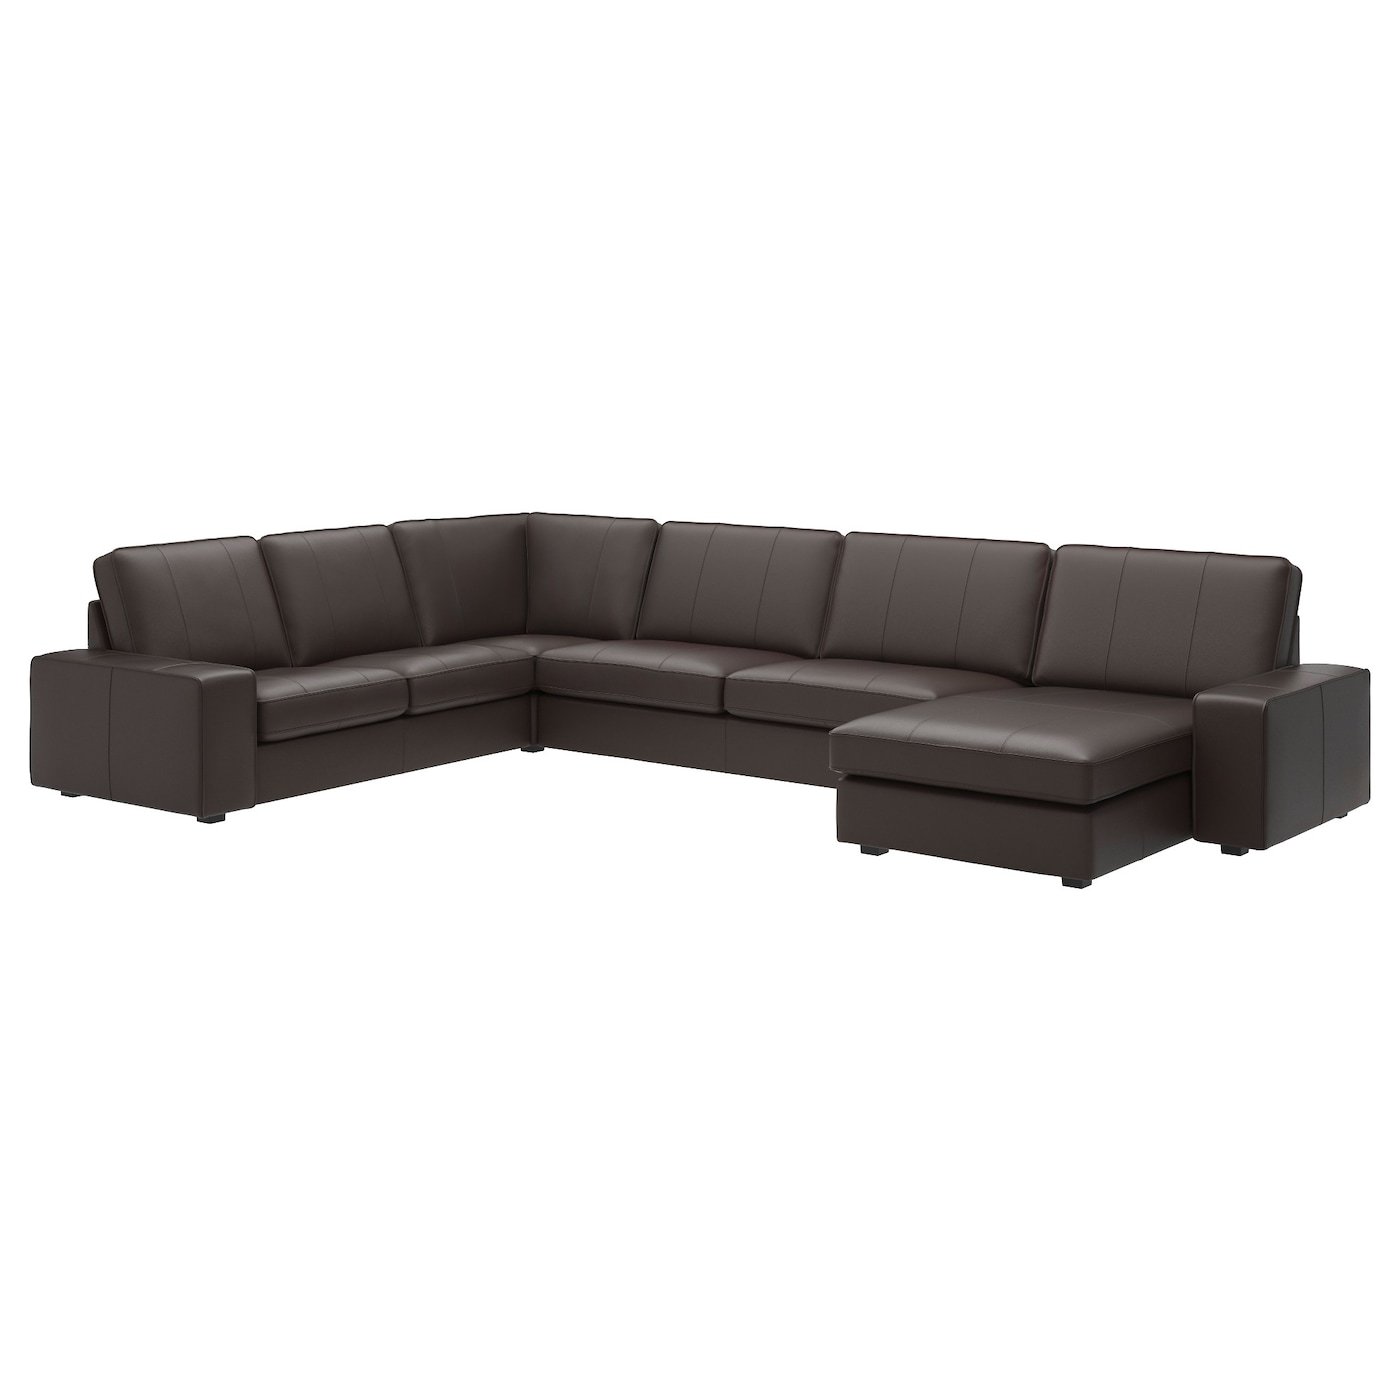 Kivik Corner Sofa 6 Seat With Chaise Longue Grann Bomstad Dark Brown Ikea